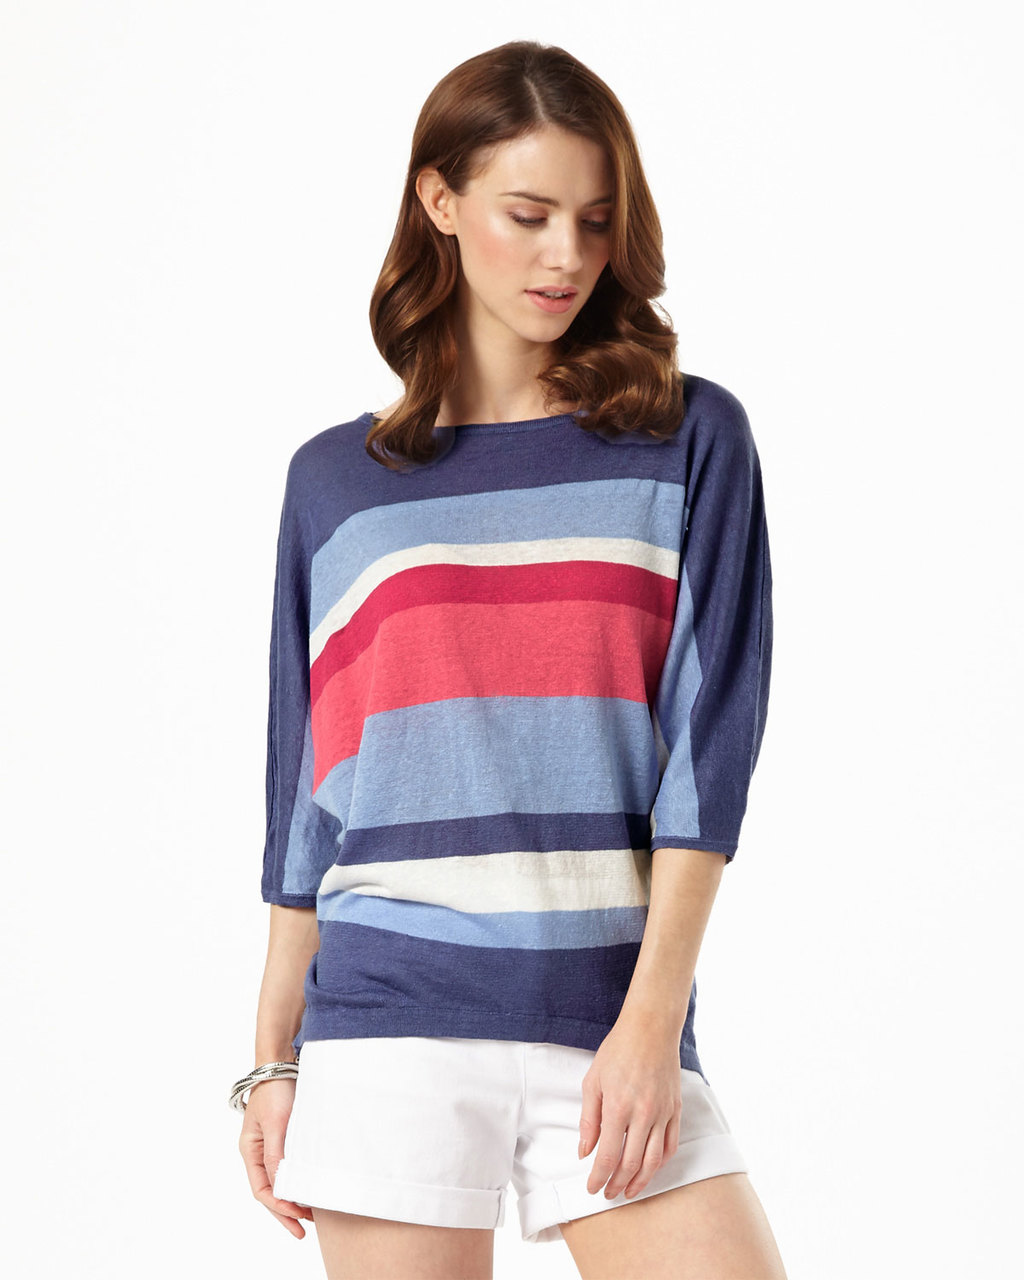 Sarah Stripe Linen Knit - neckline: slash/boat neckline; pattern: horizontal stripes; style: standard; secondary colour: pale blue; predominant colour: navy; occasions: casual; length: standard; fibres: linen - 100%; fit: loose; sleeve length: 3/4 length; sleeve style: standard; texture group: knits/crochet; pattern type: fabric; multicoloured: multicoloured; season: s/s 2016; wardrobe: highlight